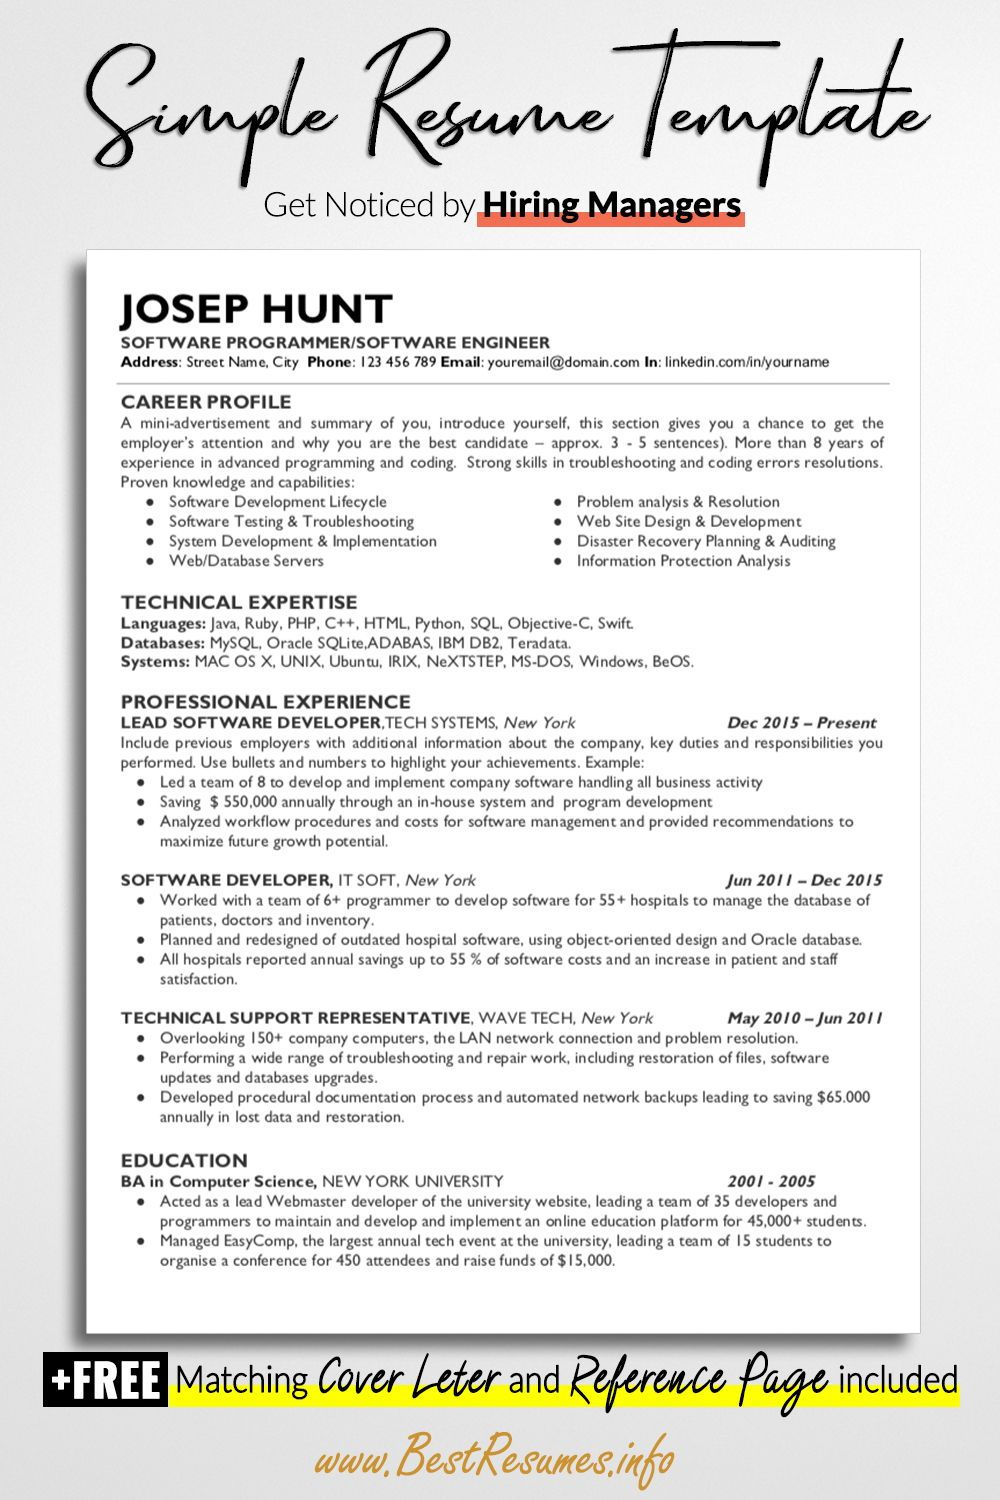 Technical Resume Template Joseph Hunt Bestresumes Info Resume Template Business Resume Template One Page Resume Template